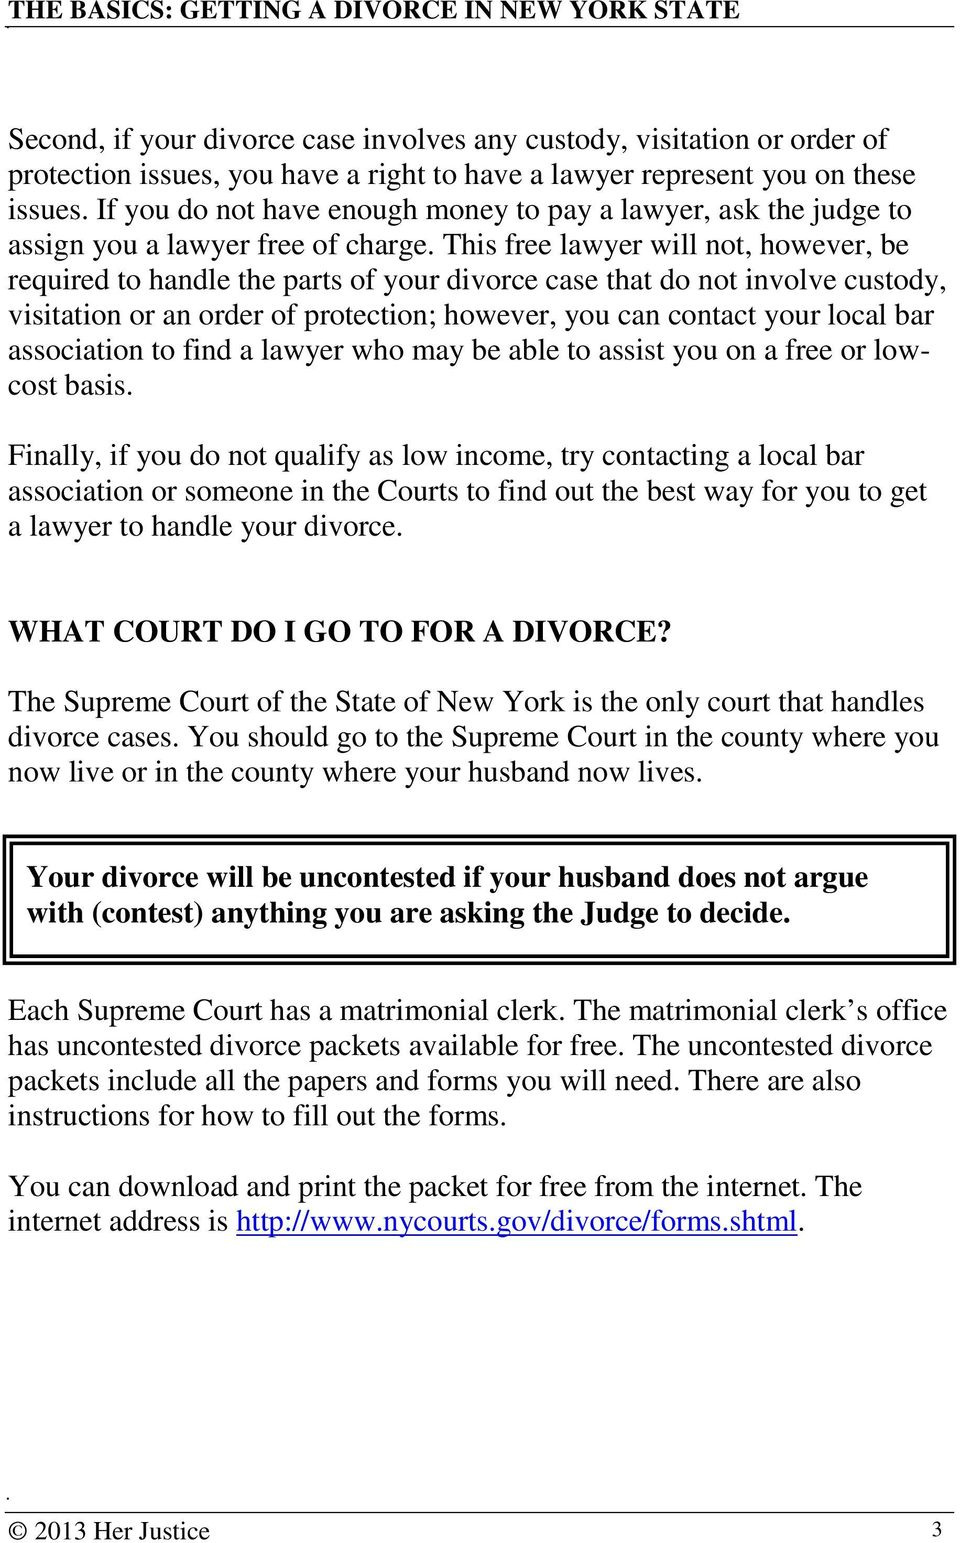 This free lawyer will not, however, be required to handle the parts of your divorce case that do not involve custody, visitation or an order of protection; however, you can contact your local bar